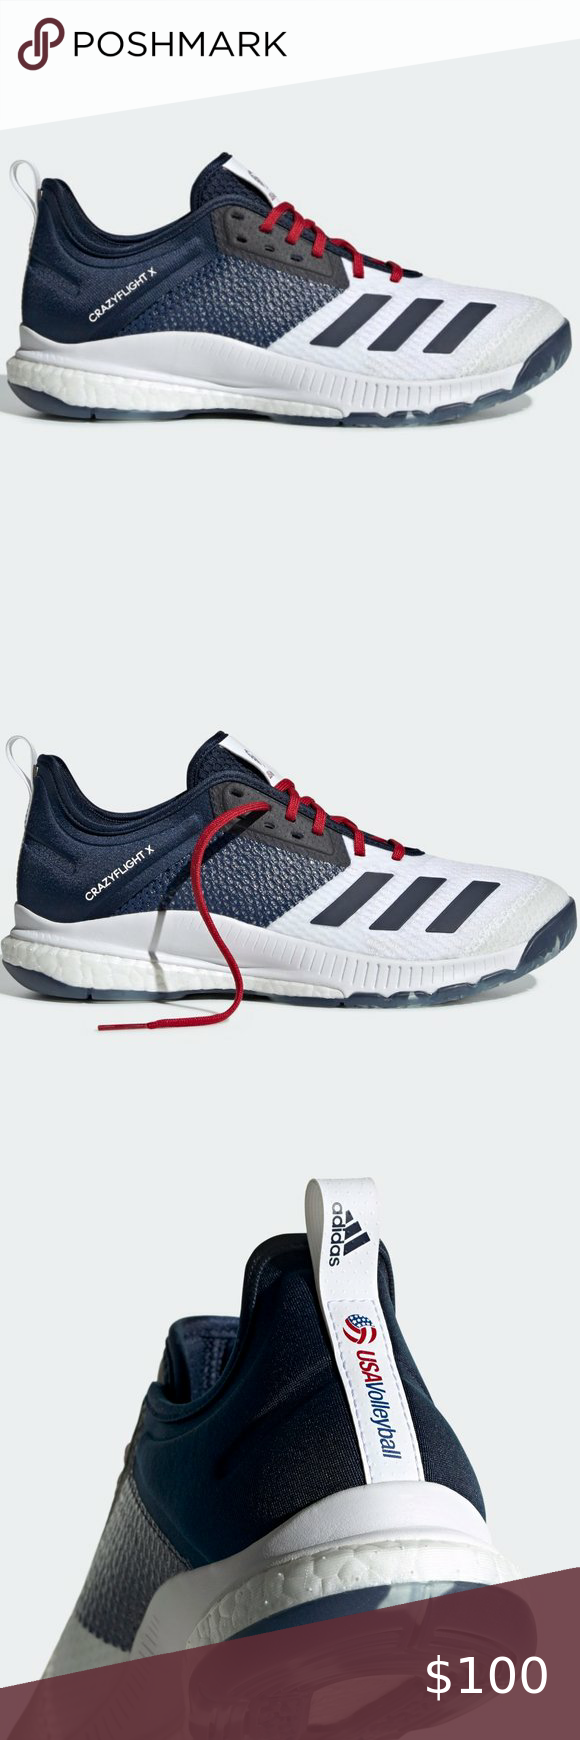 Adidas Crazyflight X 3 Usa Volleyball Shoes In 2020 Volleyball Shoes Shoe Show Shoes